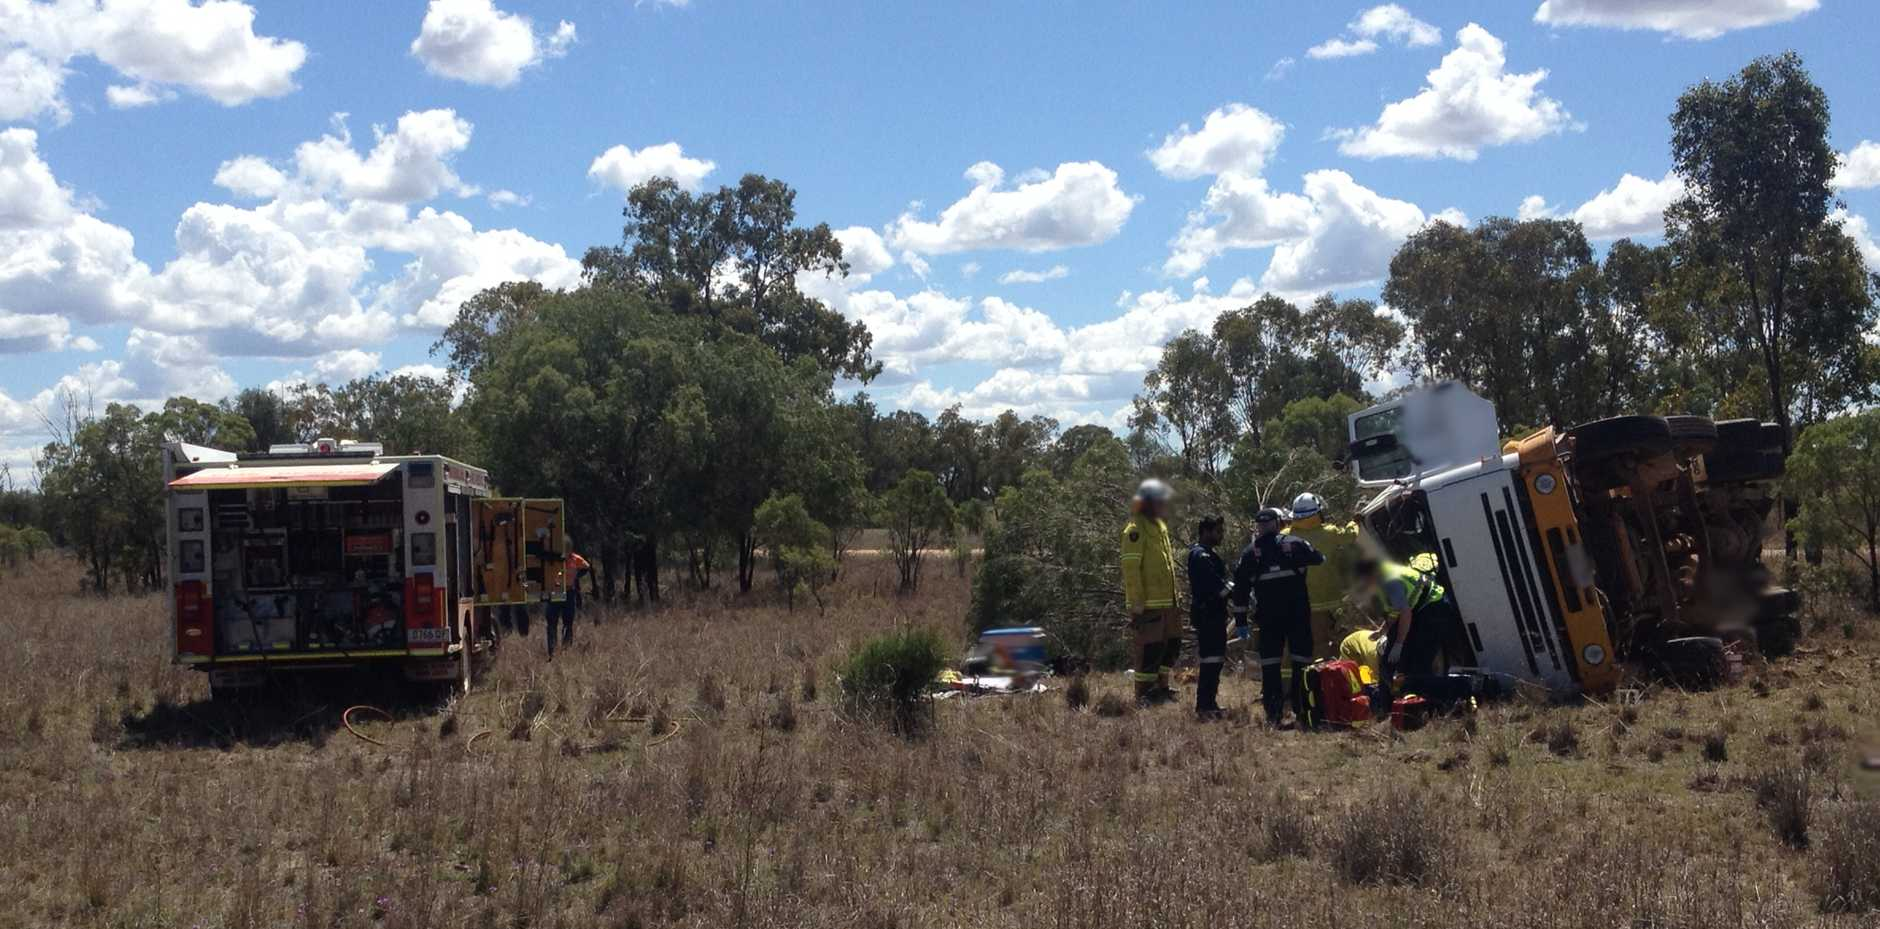 The CareFlight Doctor on board the SGAS helicopter treated the man on-site for suspected head and leg injuries.